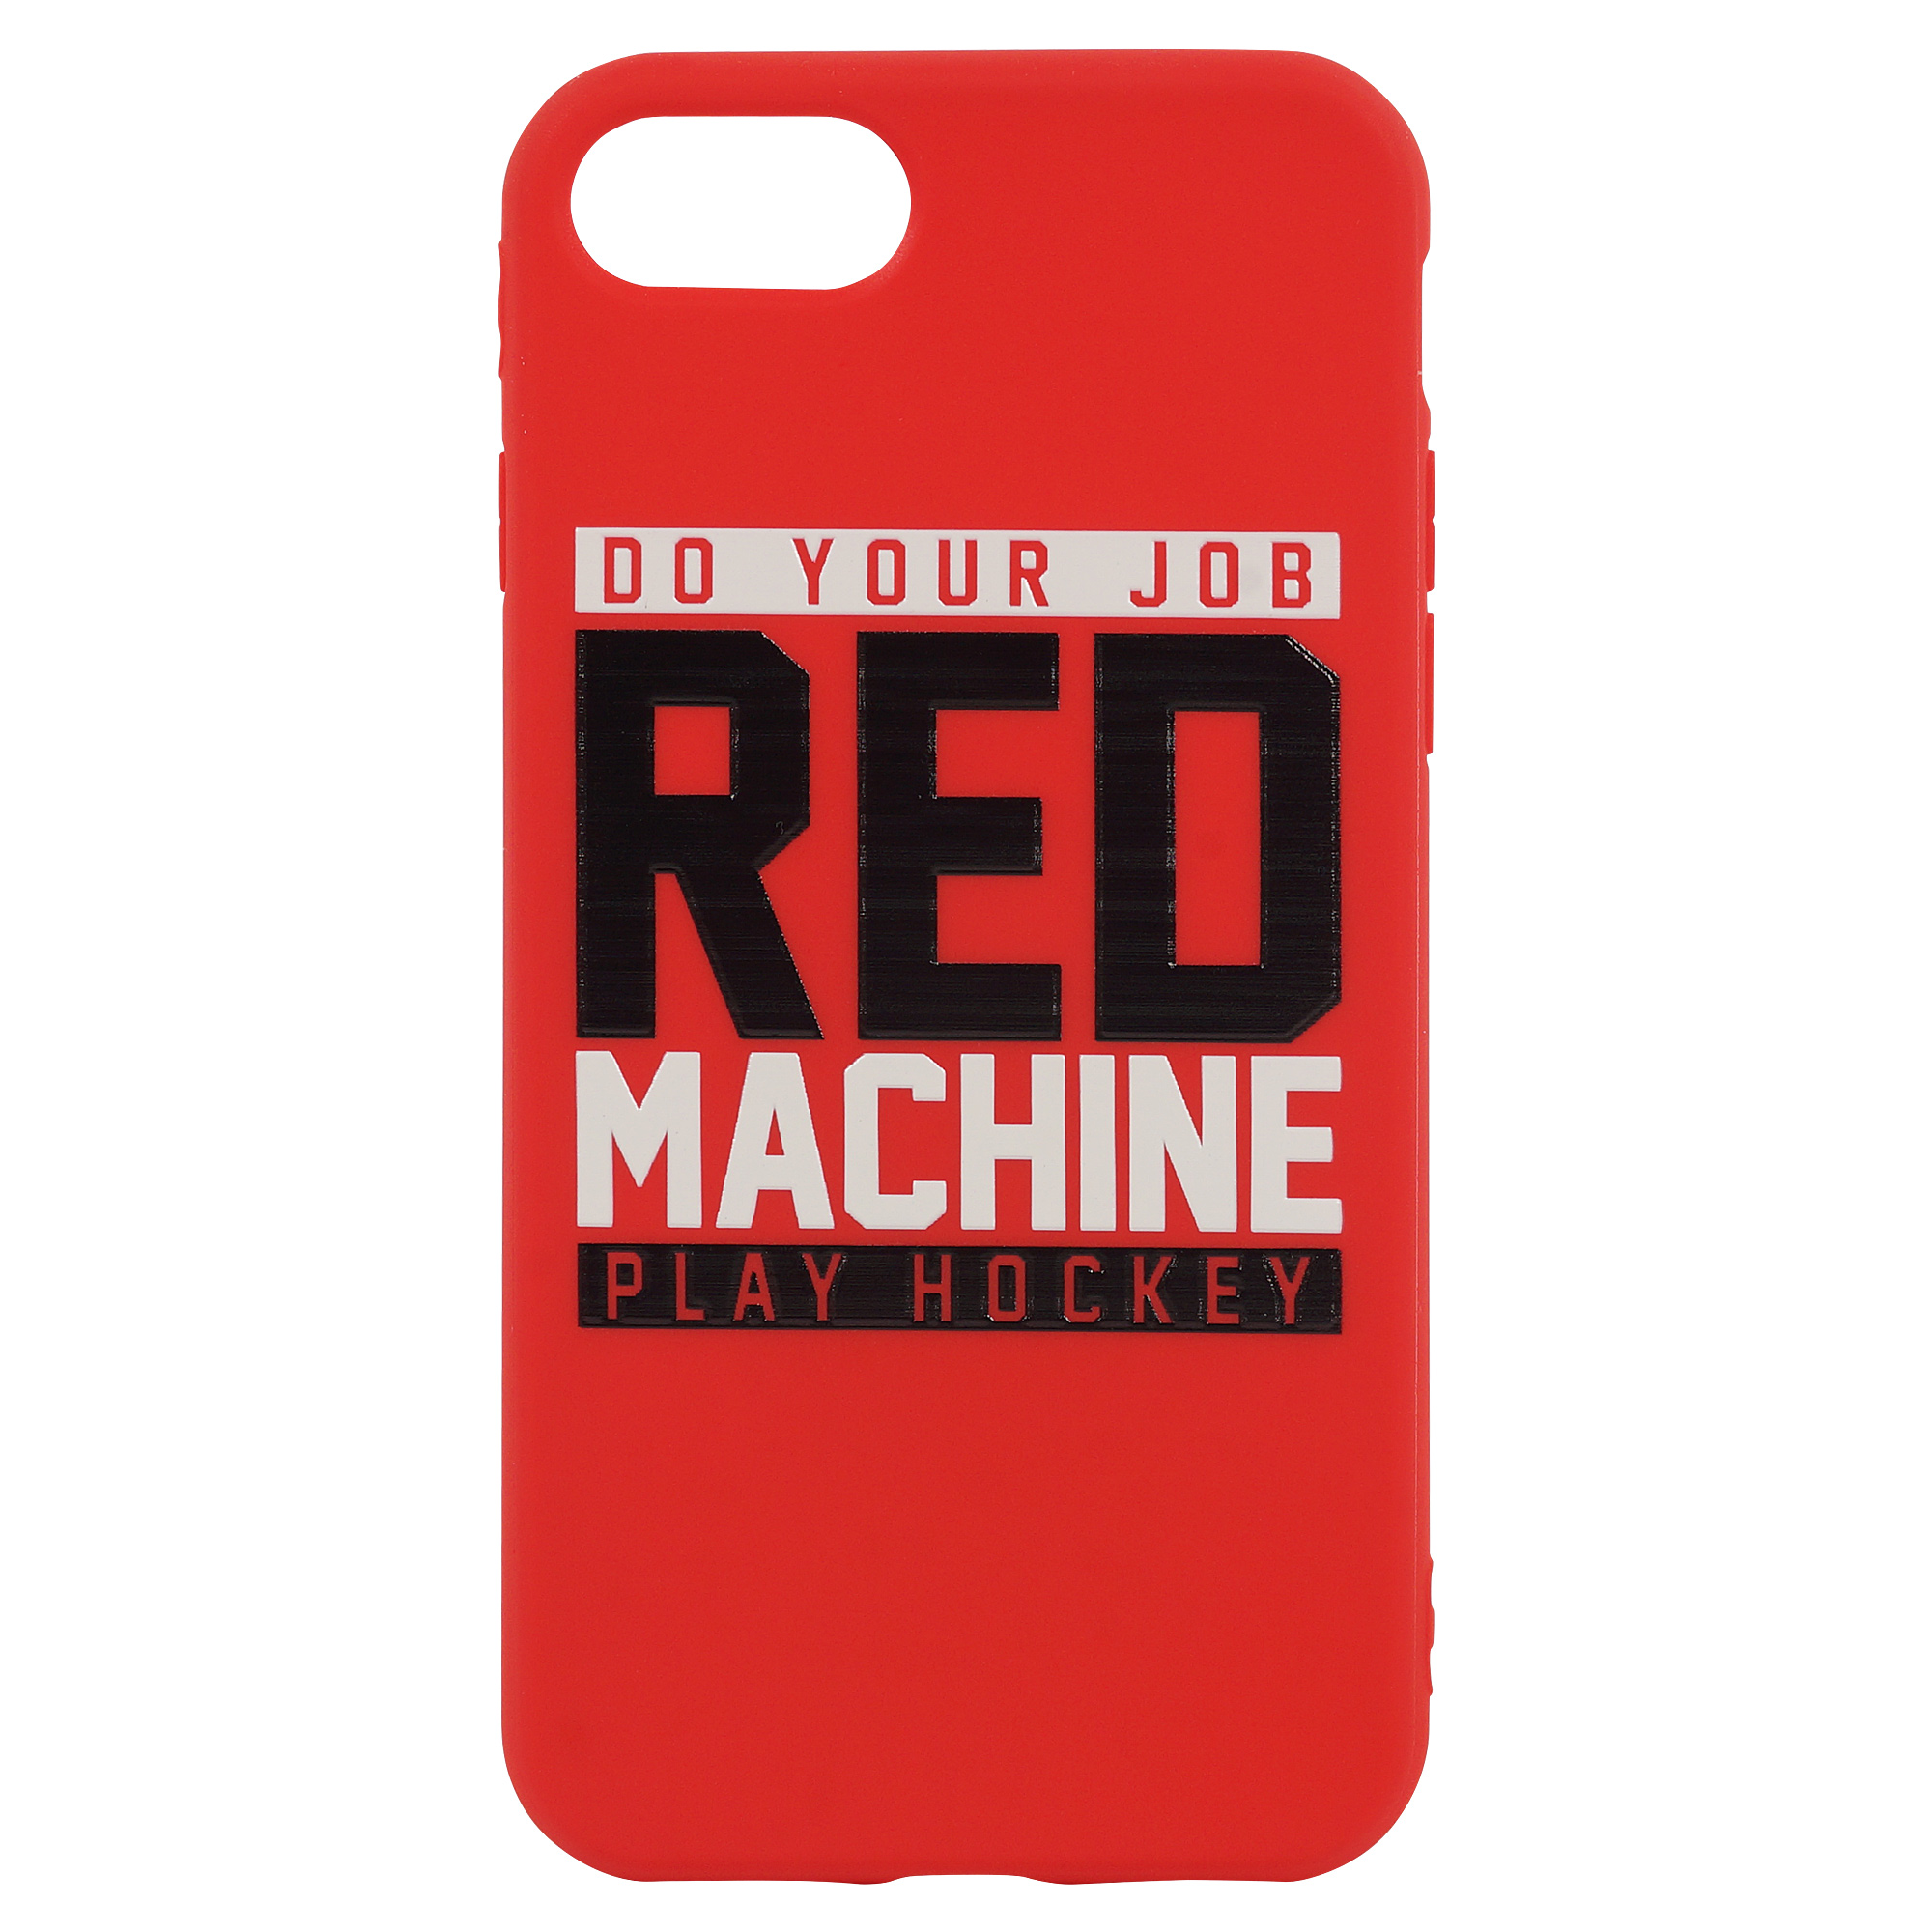 Чехол на iPhone Red Machine _7/8, красный